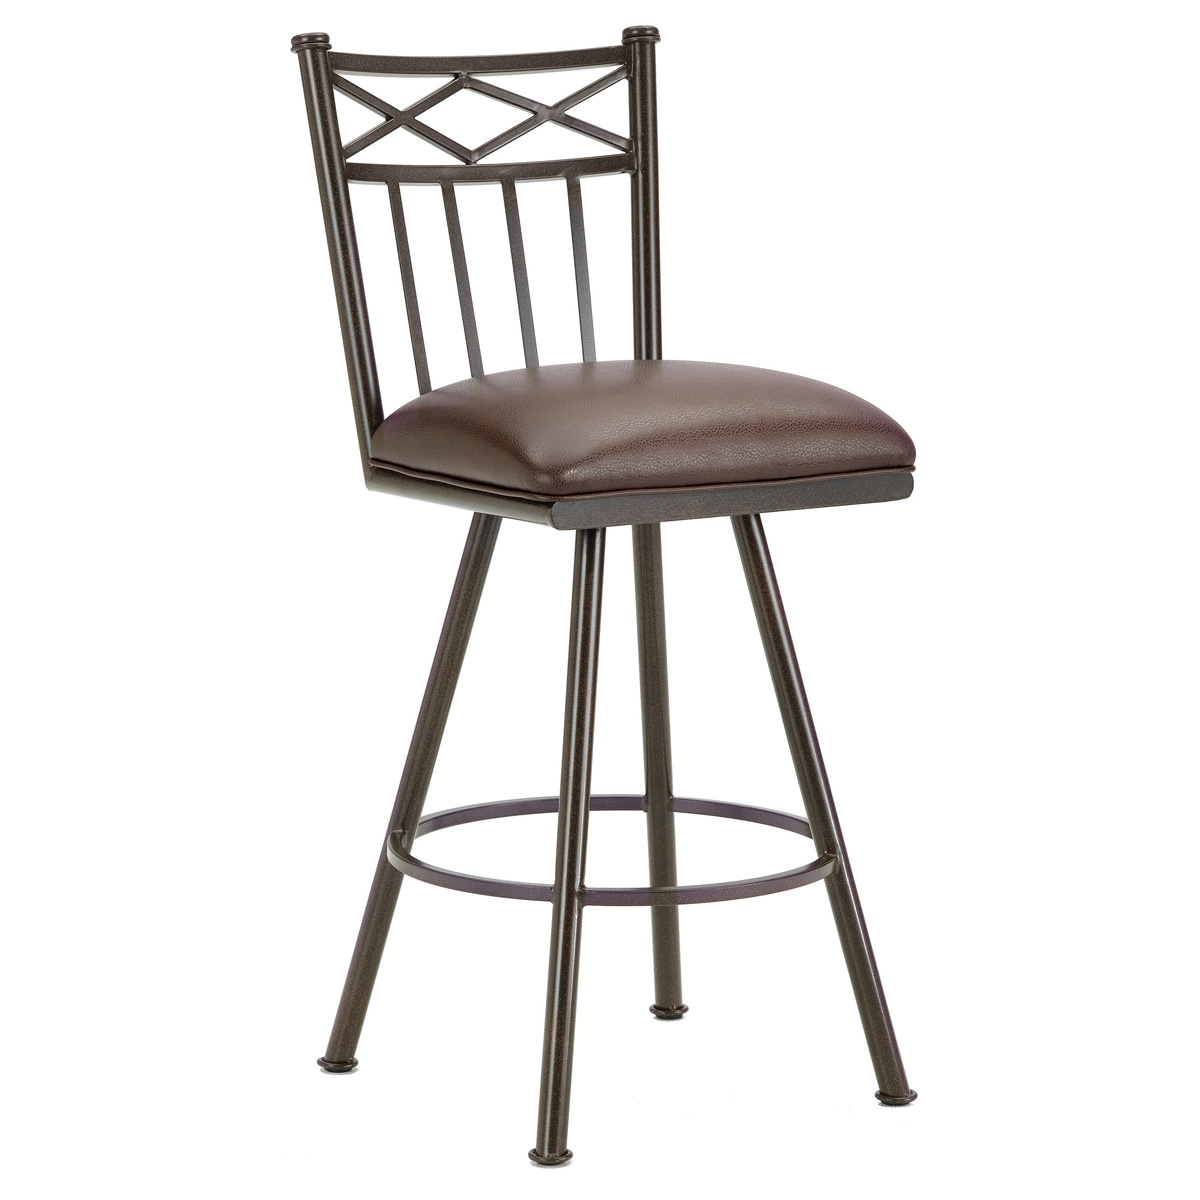 "Alexander 30"" Armless Swivel Bar Stool - X Motif, Rust, Leather"